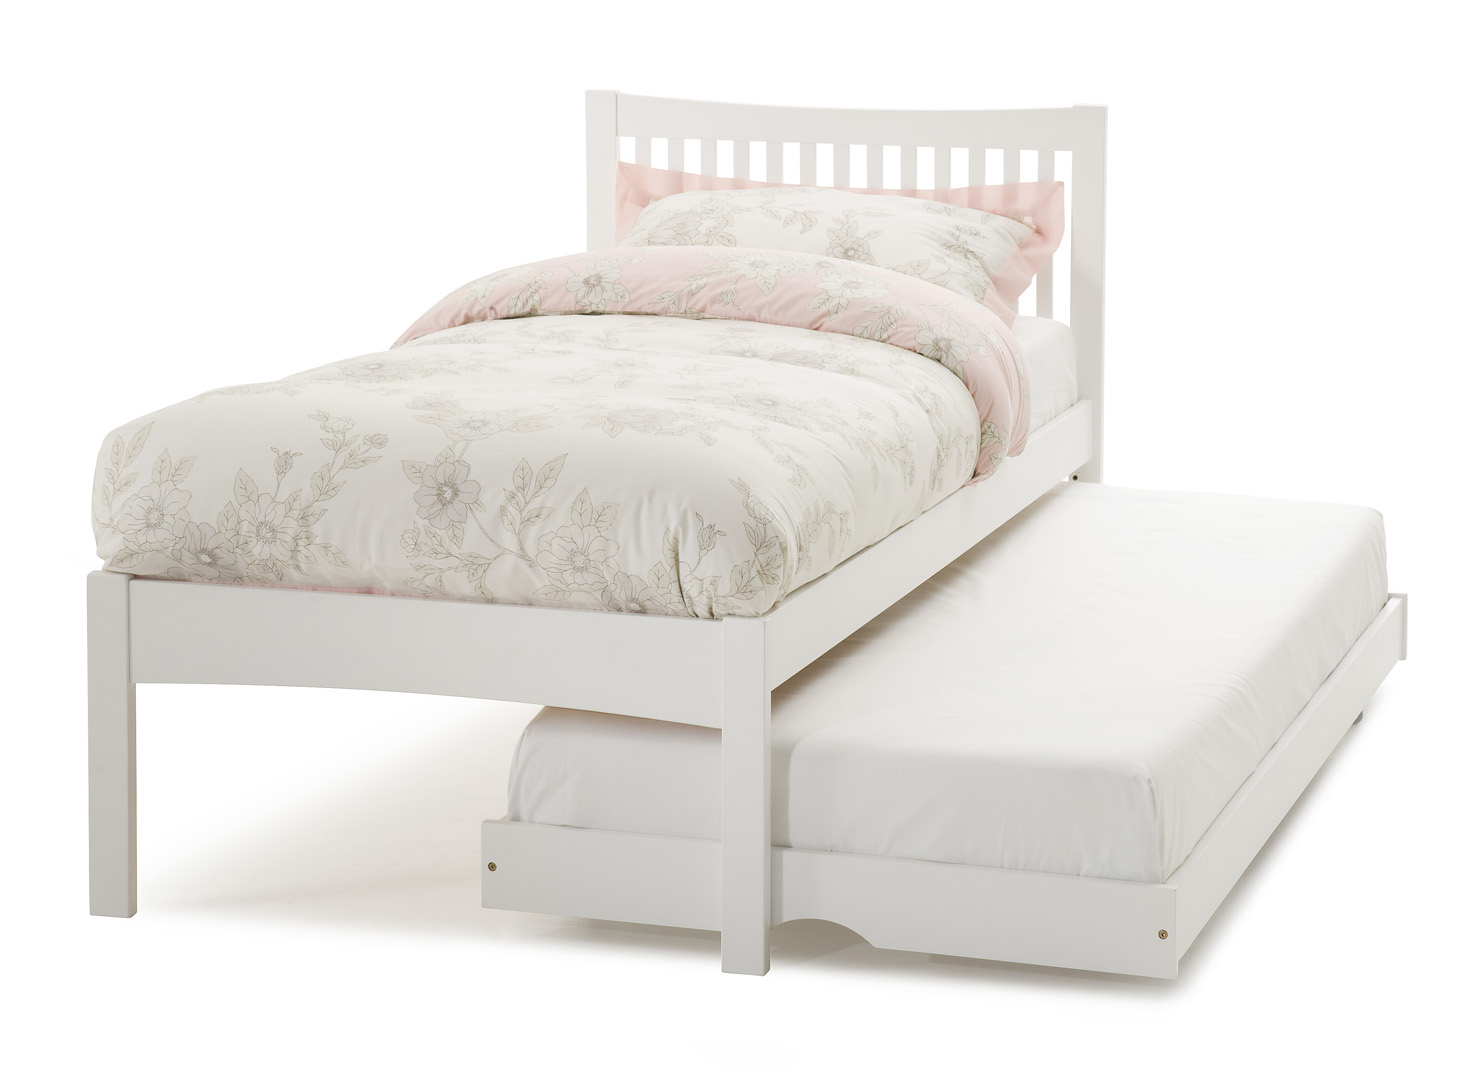 White Wooden Bed Frames 1476 x 1077